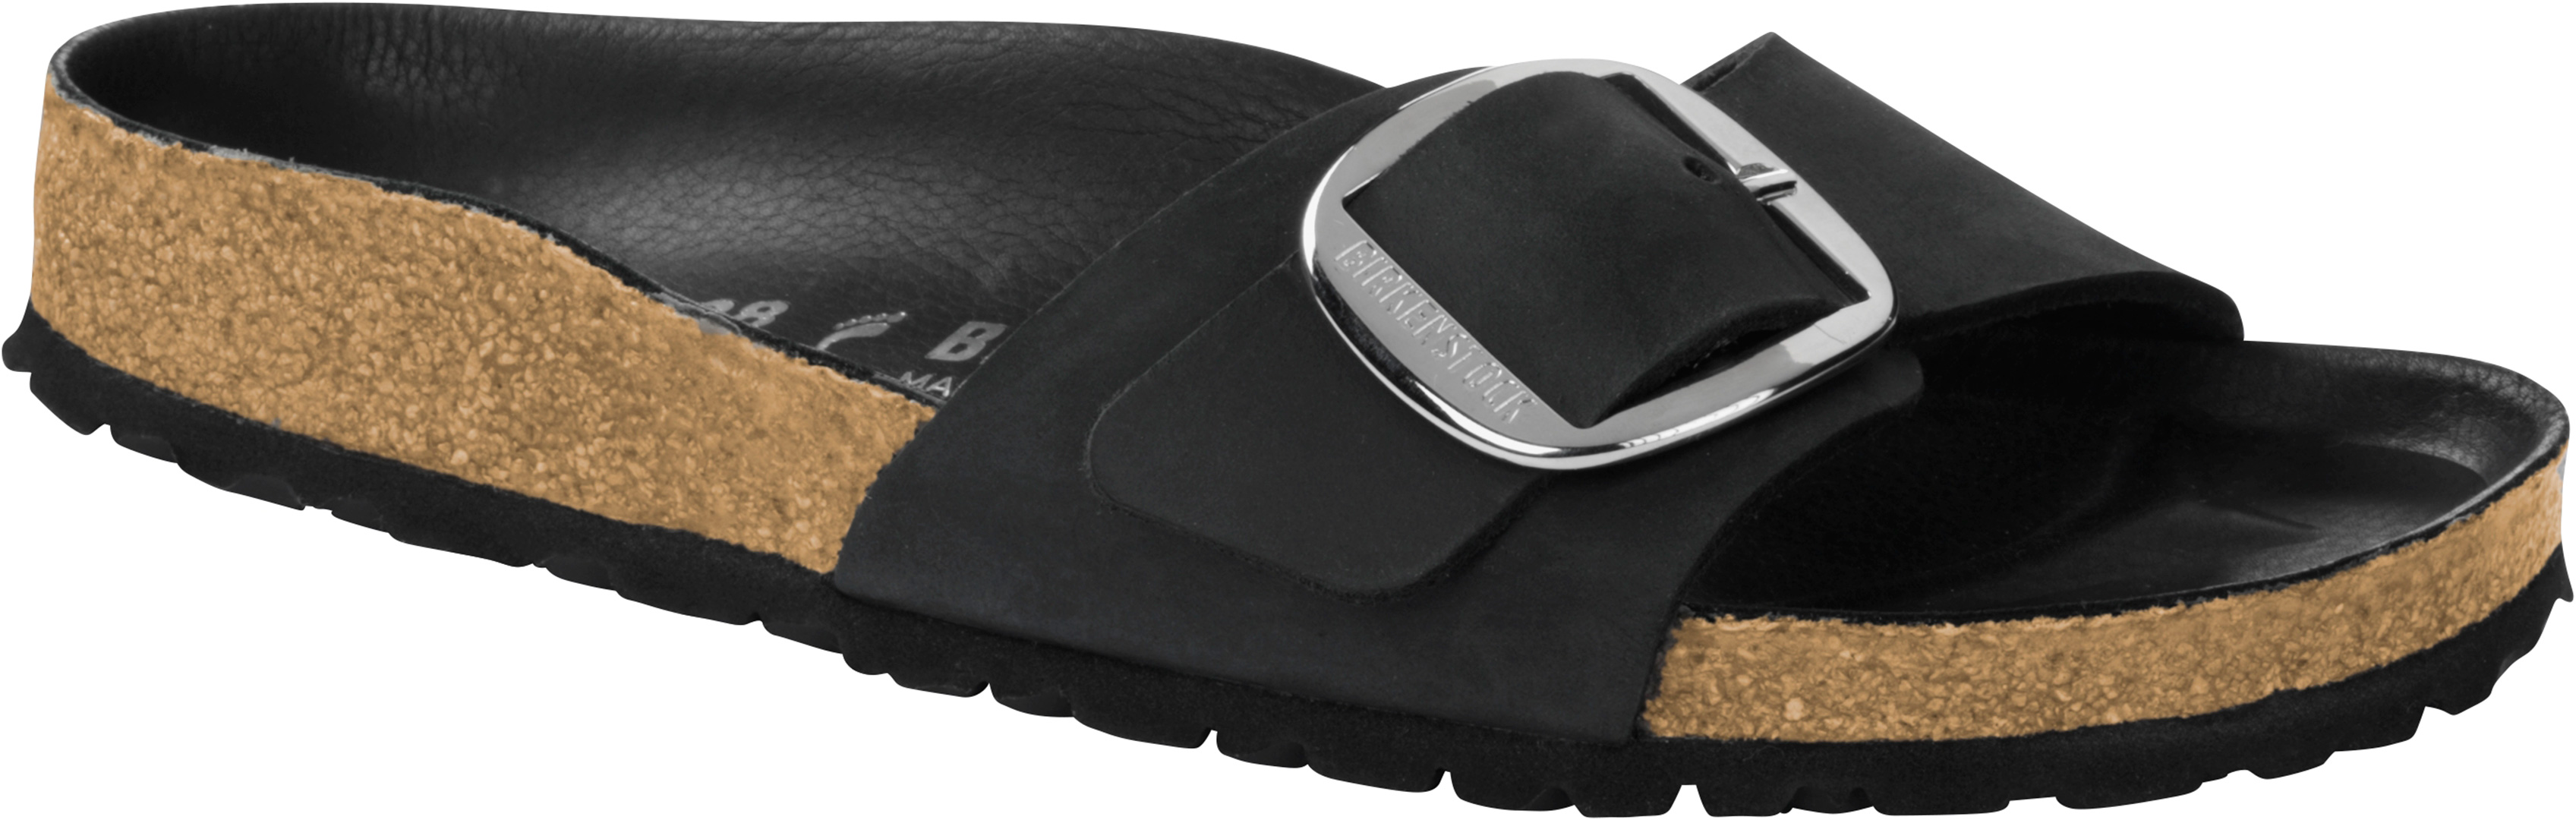 13de9ef1ac2 MADRID BIG BUCKLE SLIM Sandal 2019 black